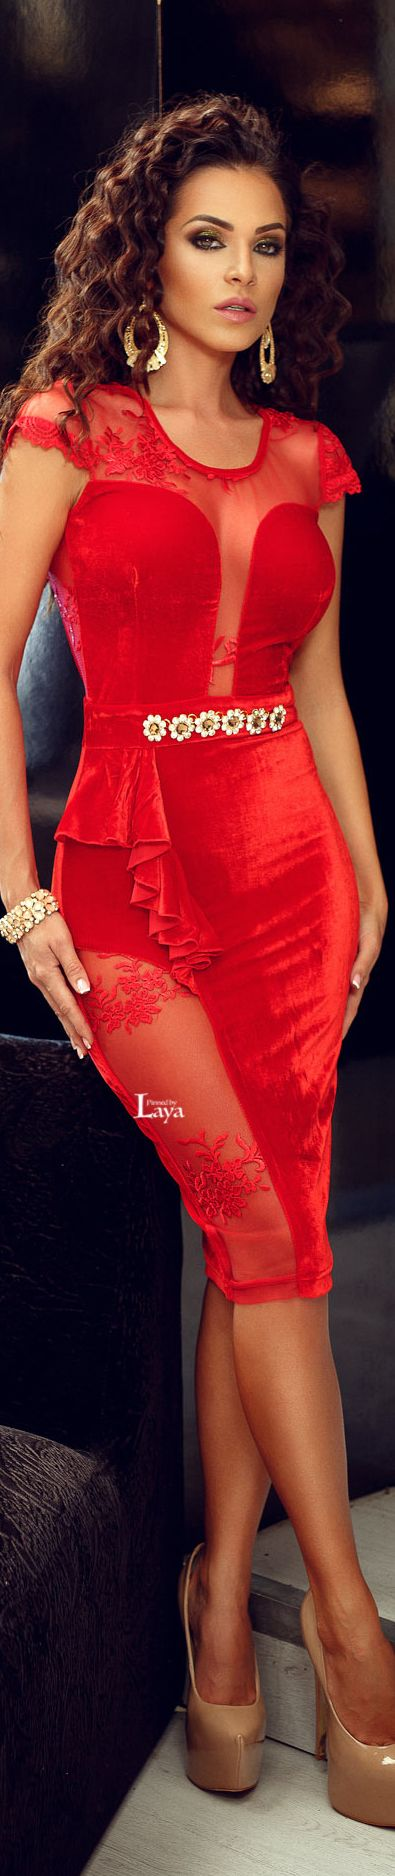 ♔LAYA♔ATMOSPHERE FASHION♔ red dress  women fashion outfit clothing style apparel @roressclothes closet ideas